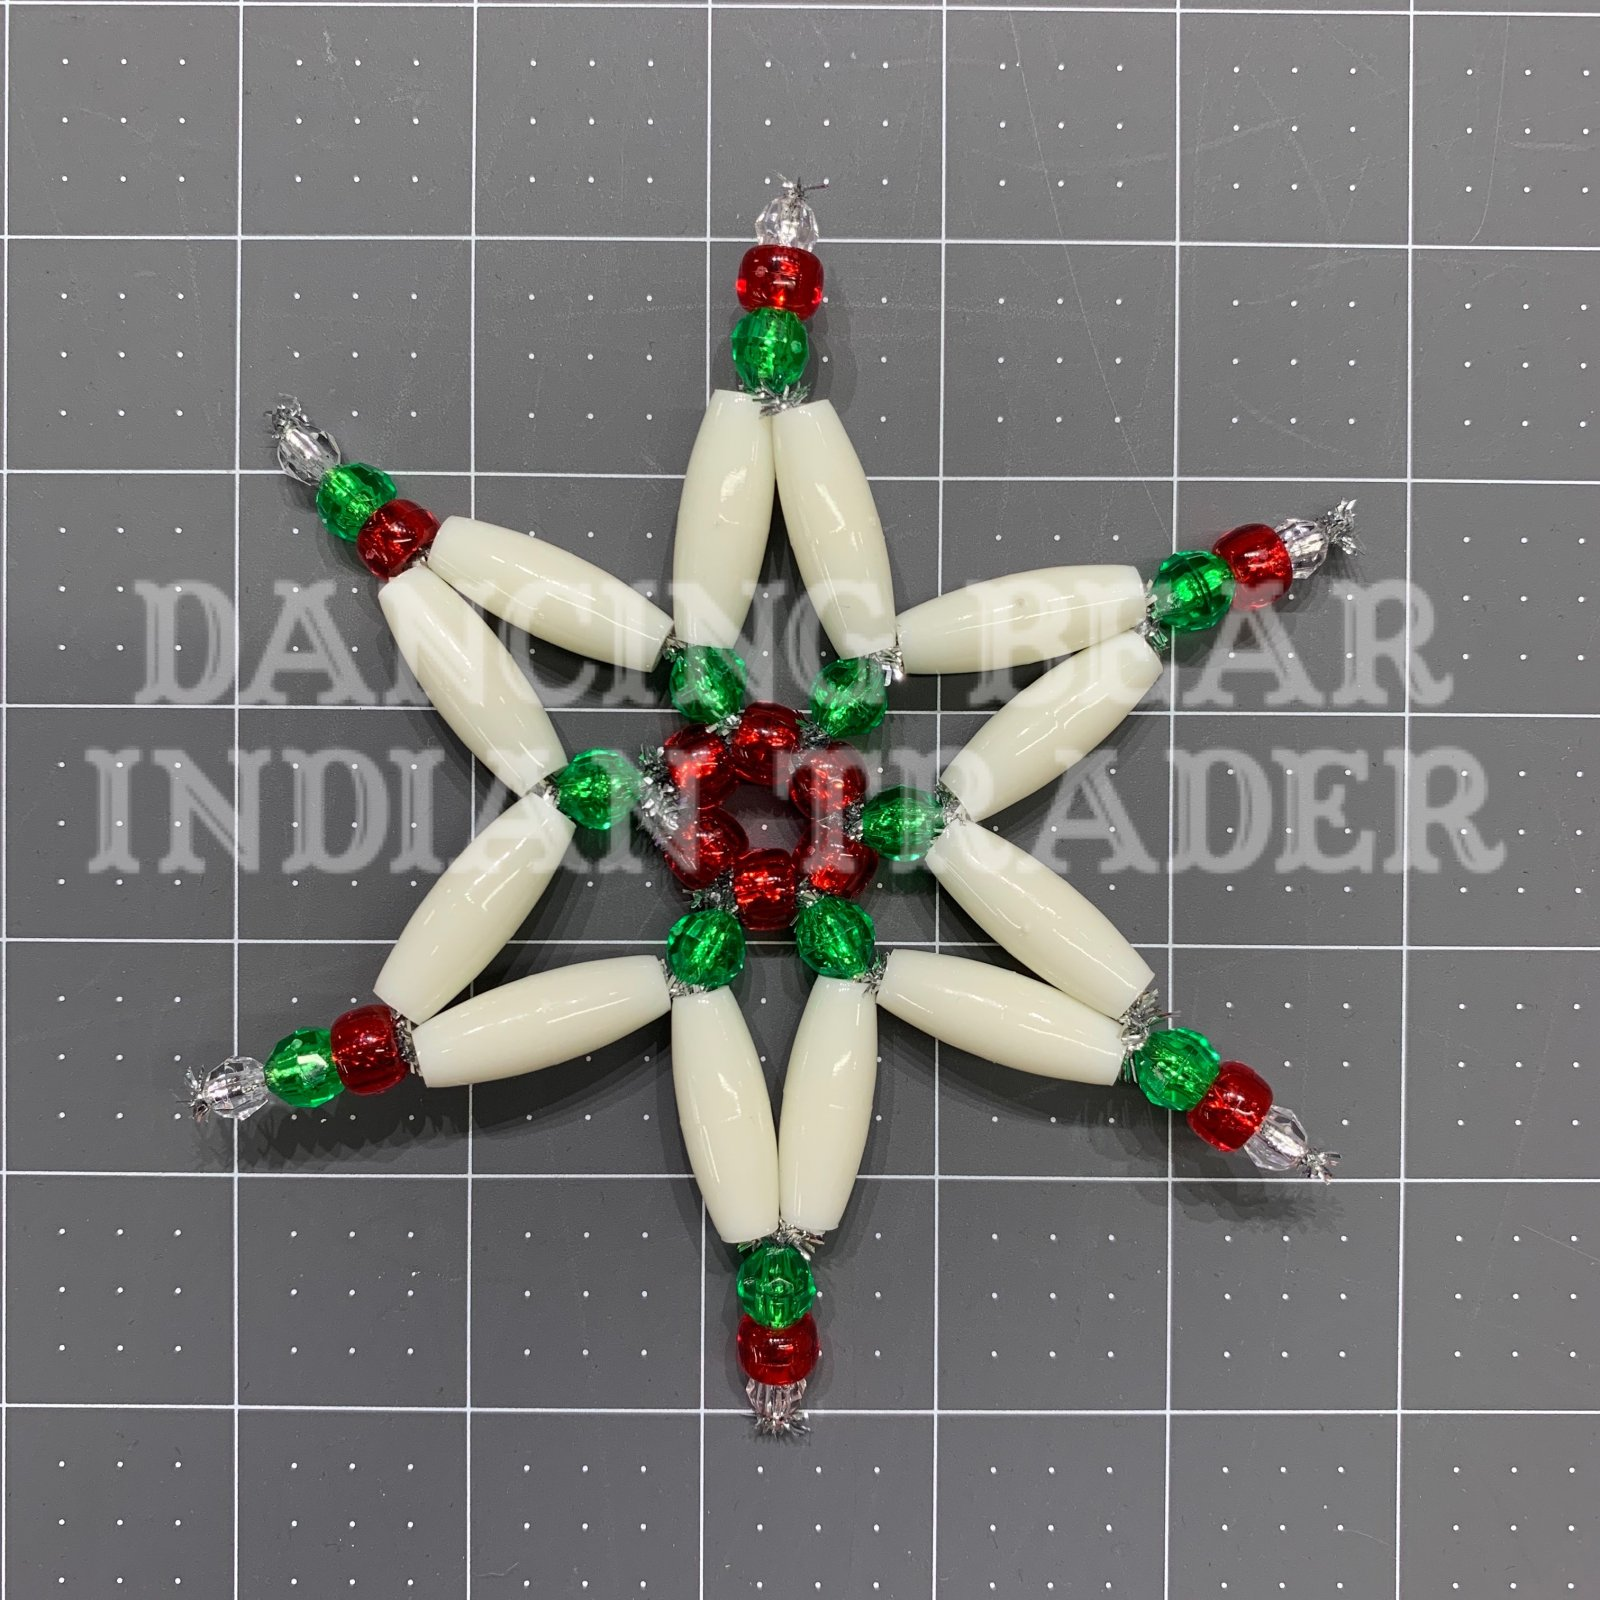 Native Snowflake Ornament Kit - Makes 25